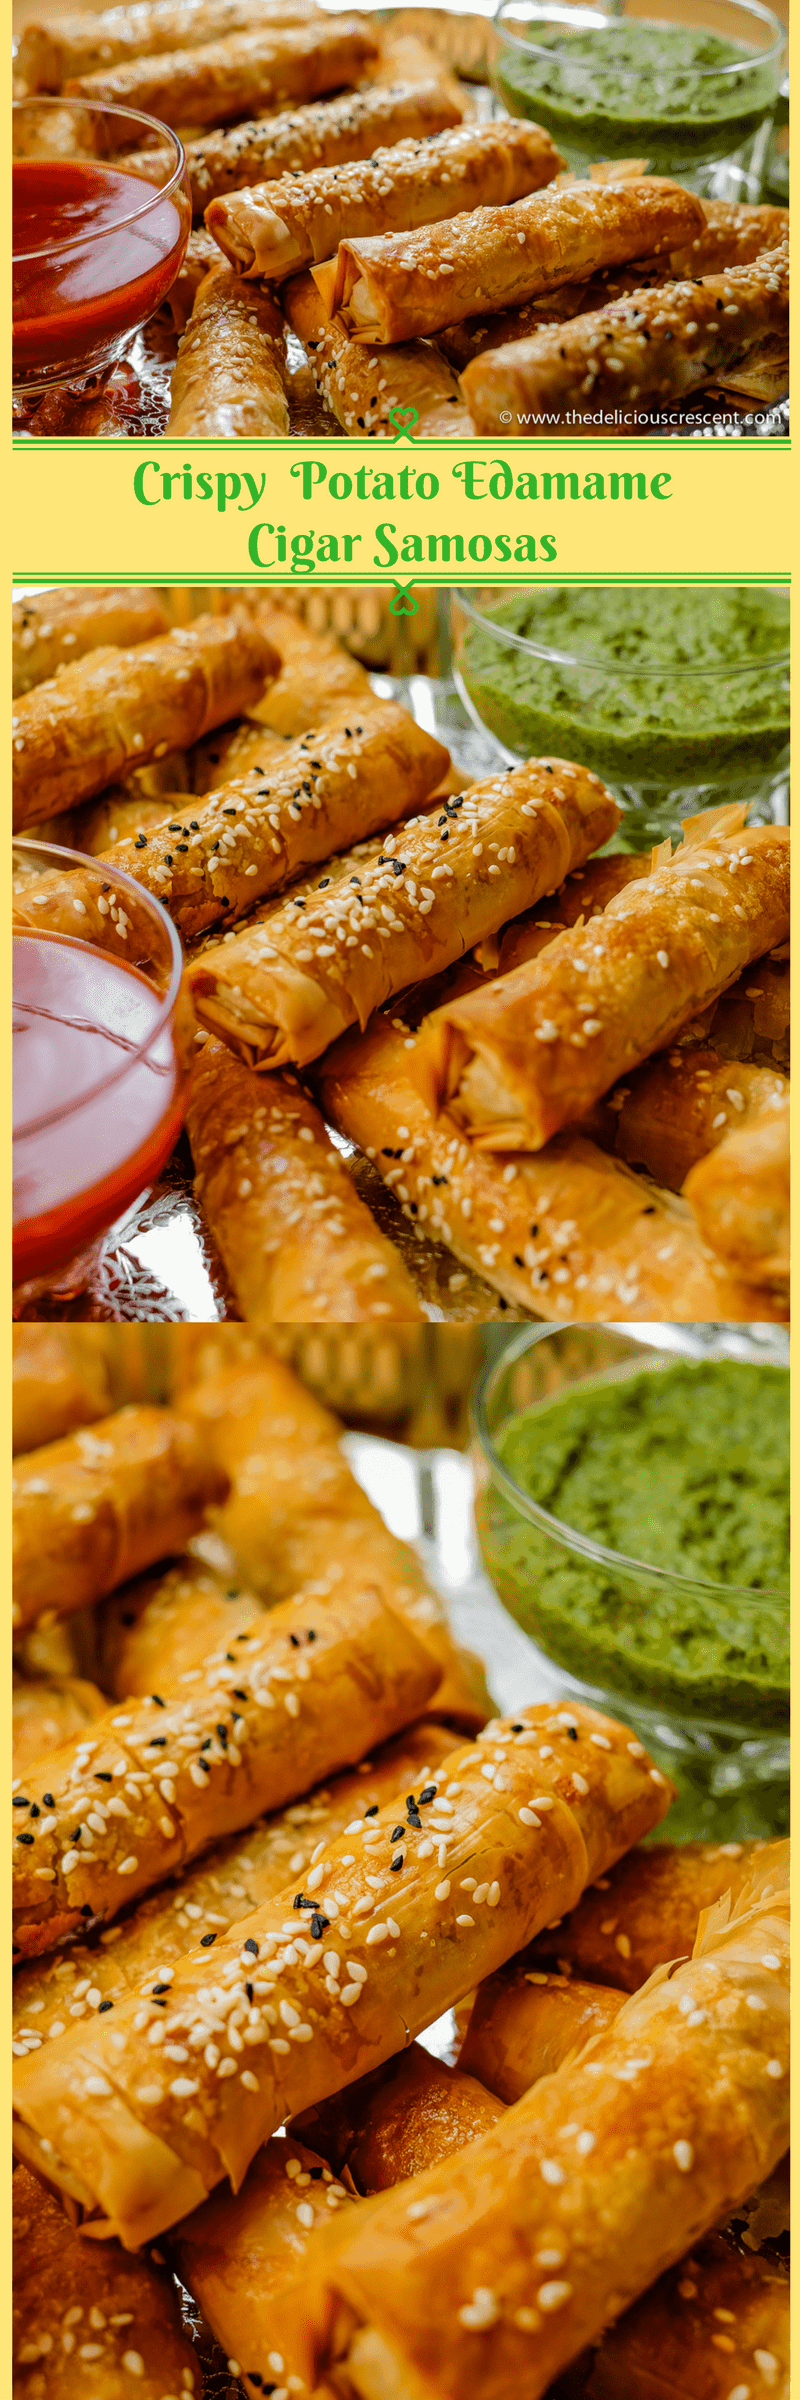 Collage of pictures of Crispy Potato Edamame Cigar Samosas - an easier and lighter baked version of a popular Indian snack.